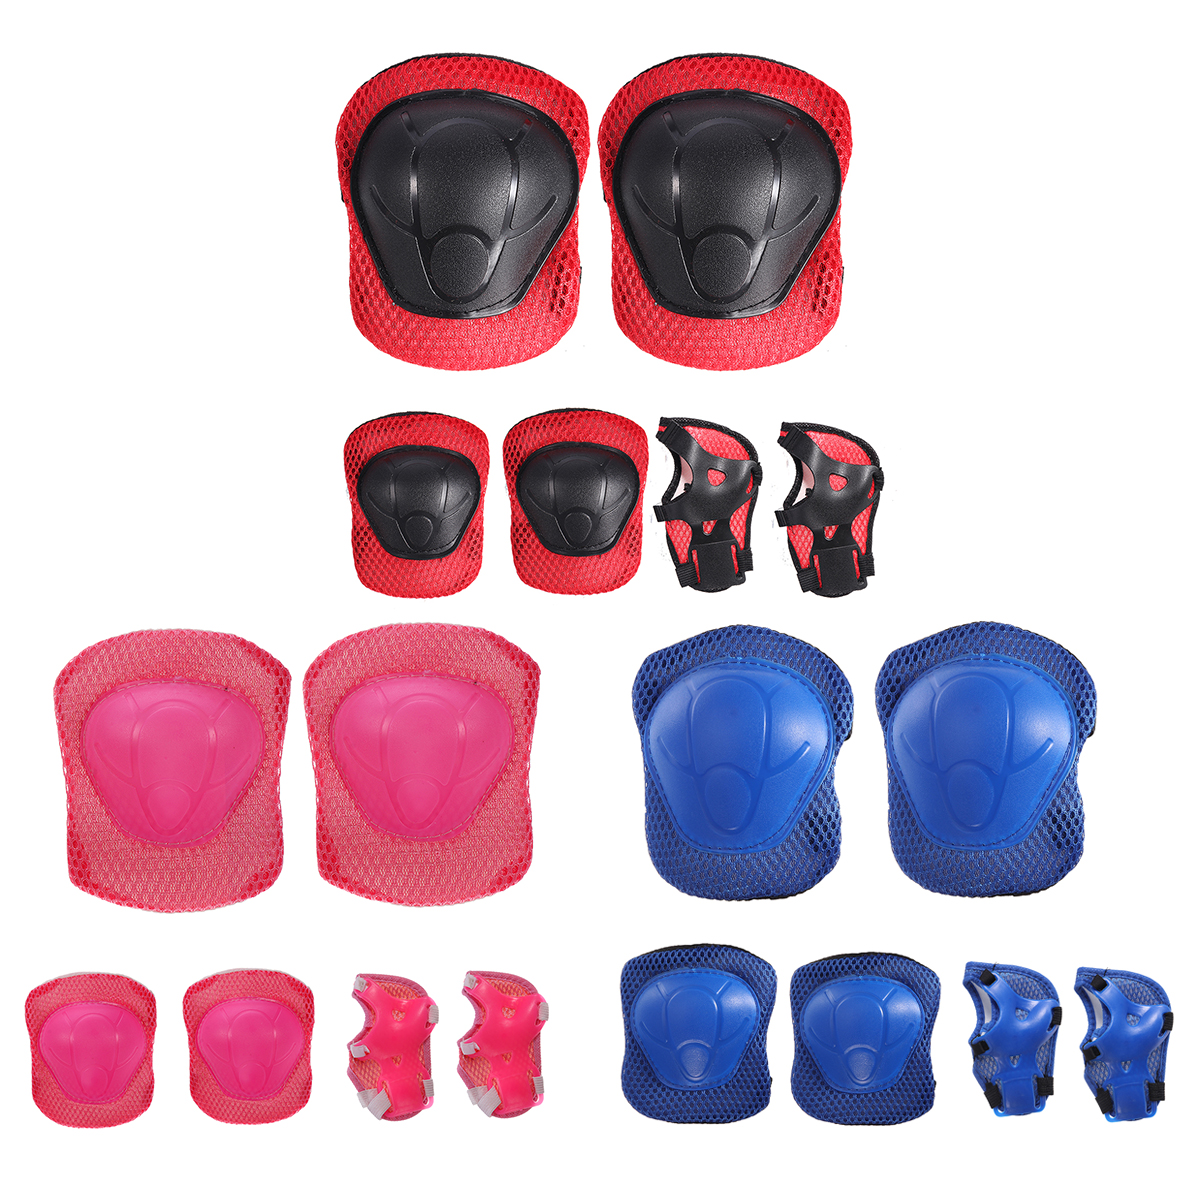 6Pcs/Set Children Skating Bike Protective Gear Sets Knee Elbow P